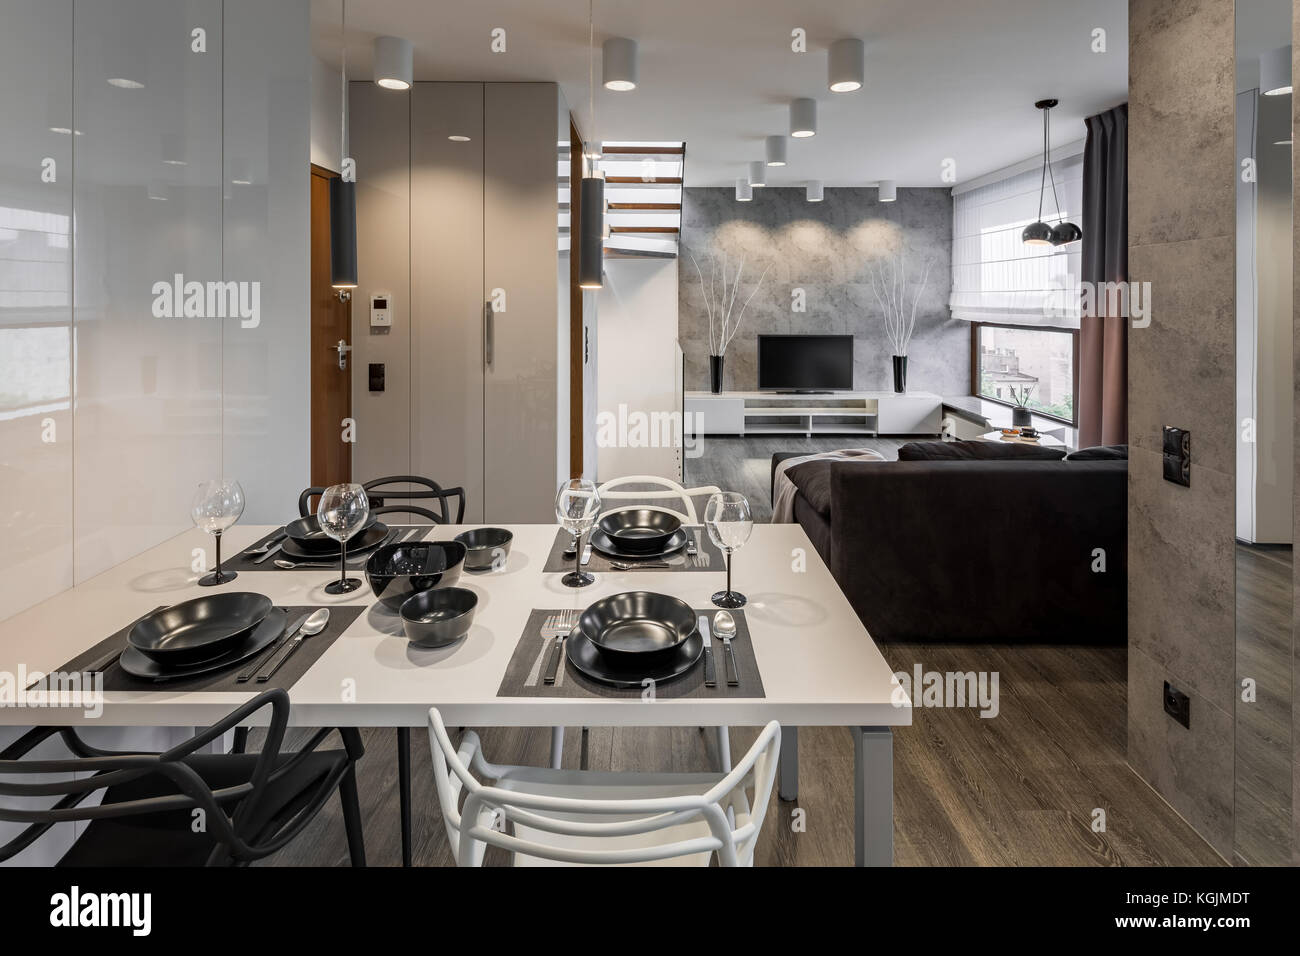 Modern Apartment With White Table And Black Dinnerware Stock Photo Alamy